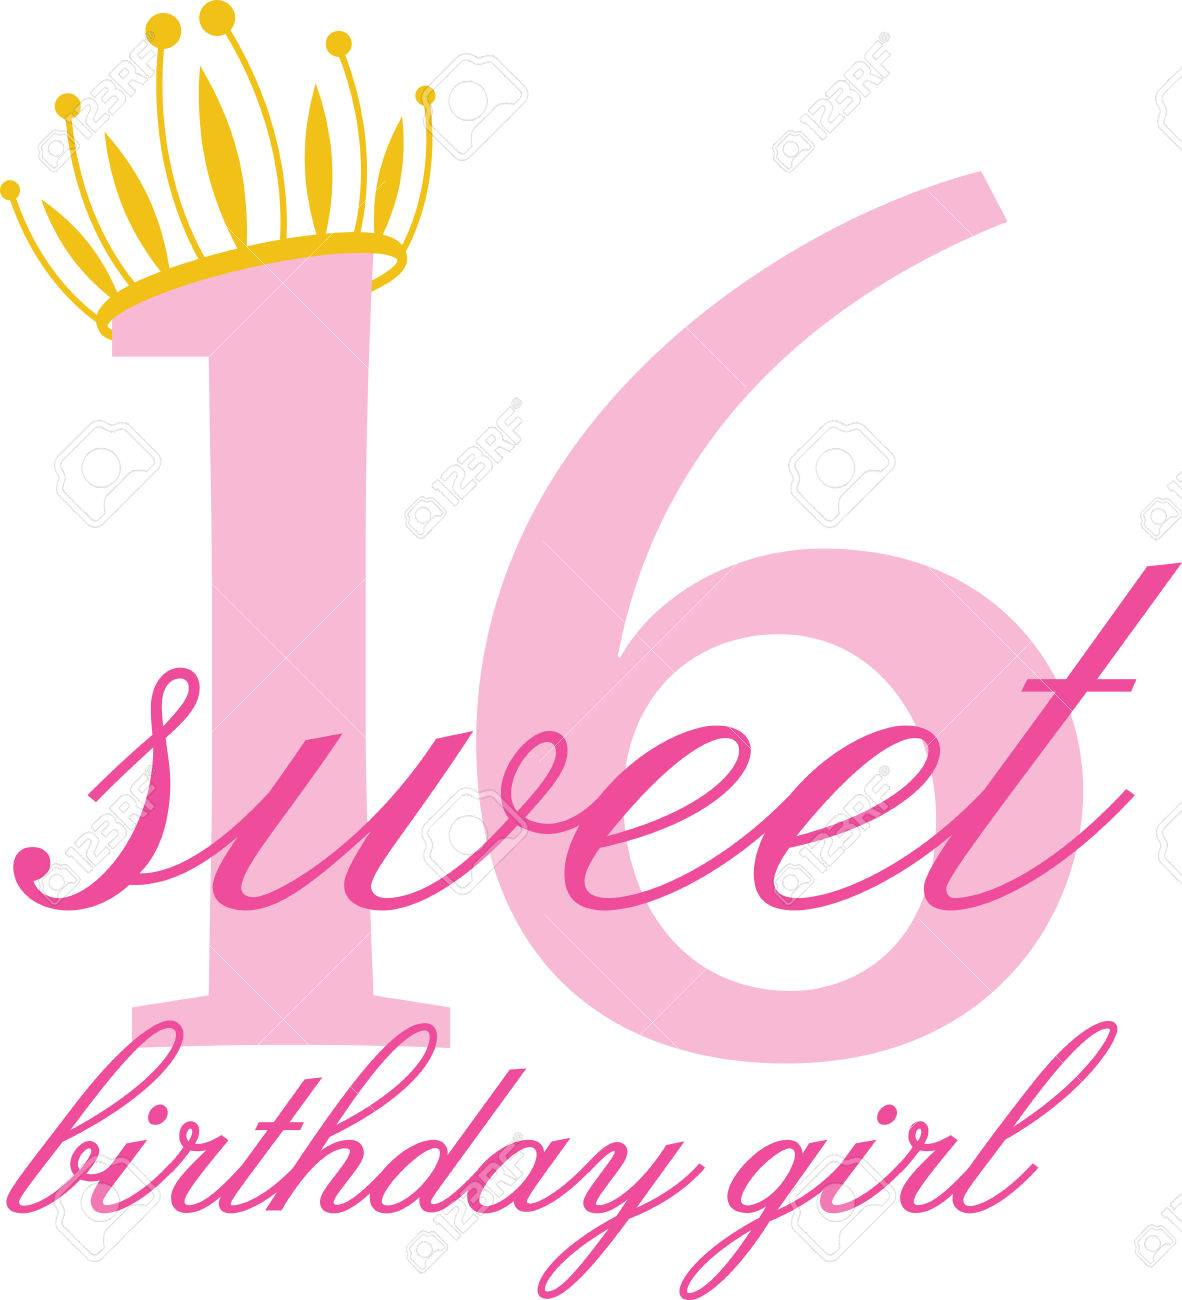 Sweet 16 birthday clipart 7 » Clipart Station.